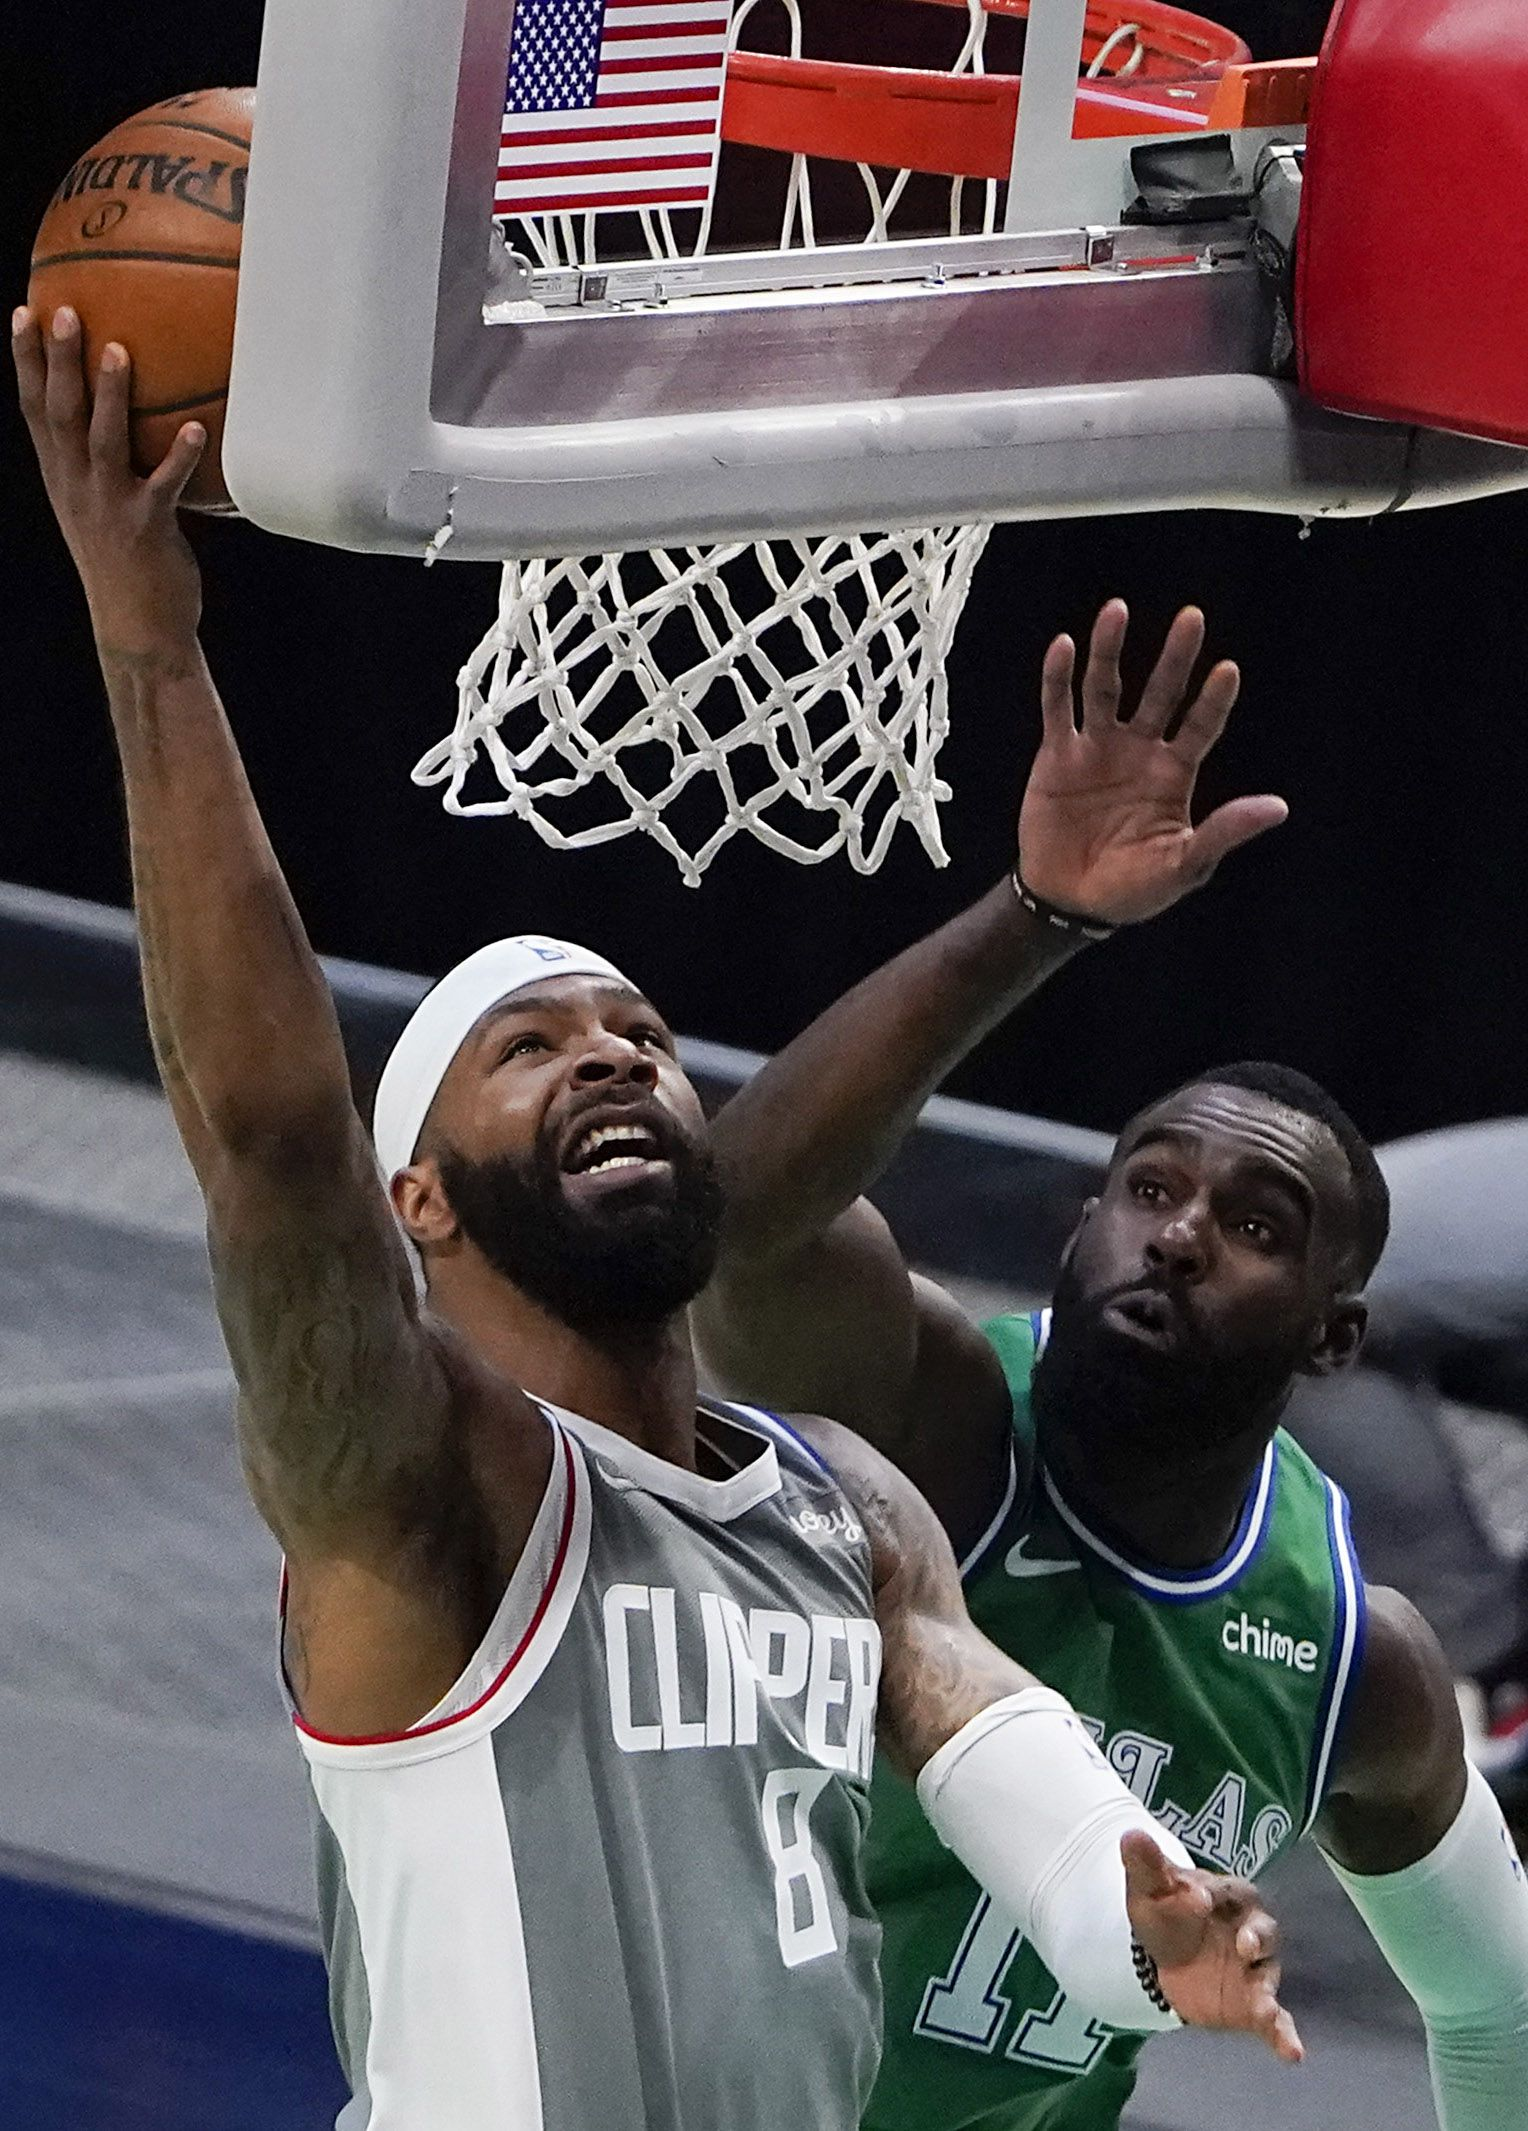 LA Clippers forward Marcus Morris Sr. (8) shoots past Dallas Mavericks forward Tim Hardaway Jr. (11) during the first quarter of an NBA basketball game at American Airlines Center on Wednesday, March 17, 2021, in Dallas.